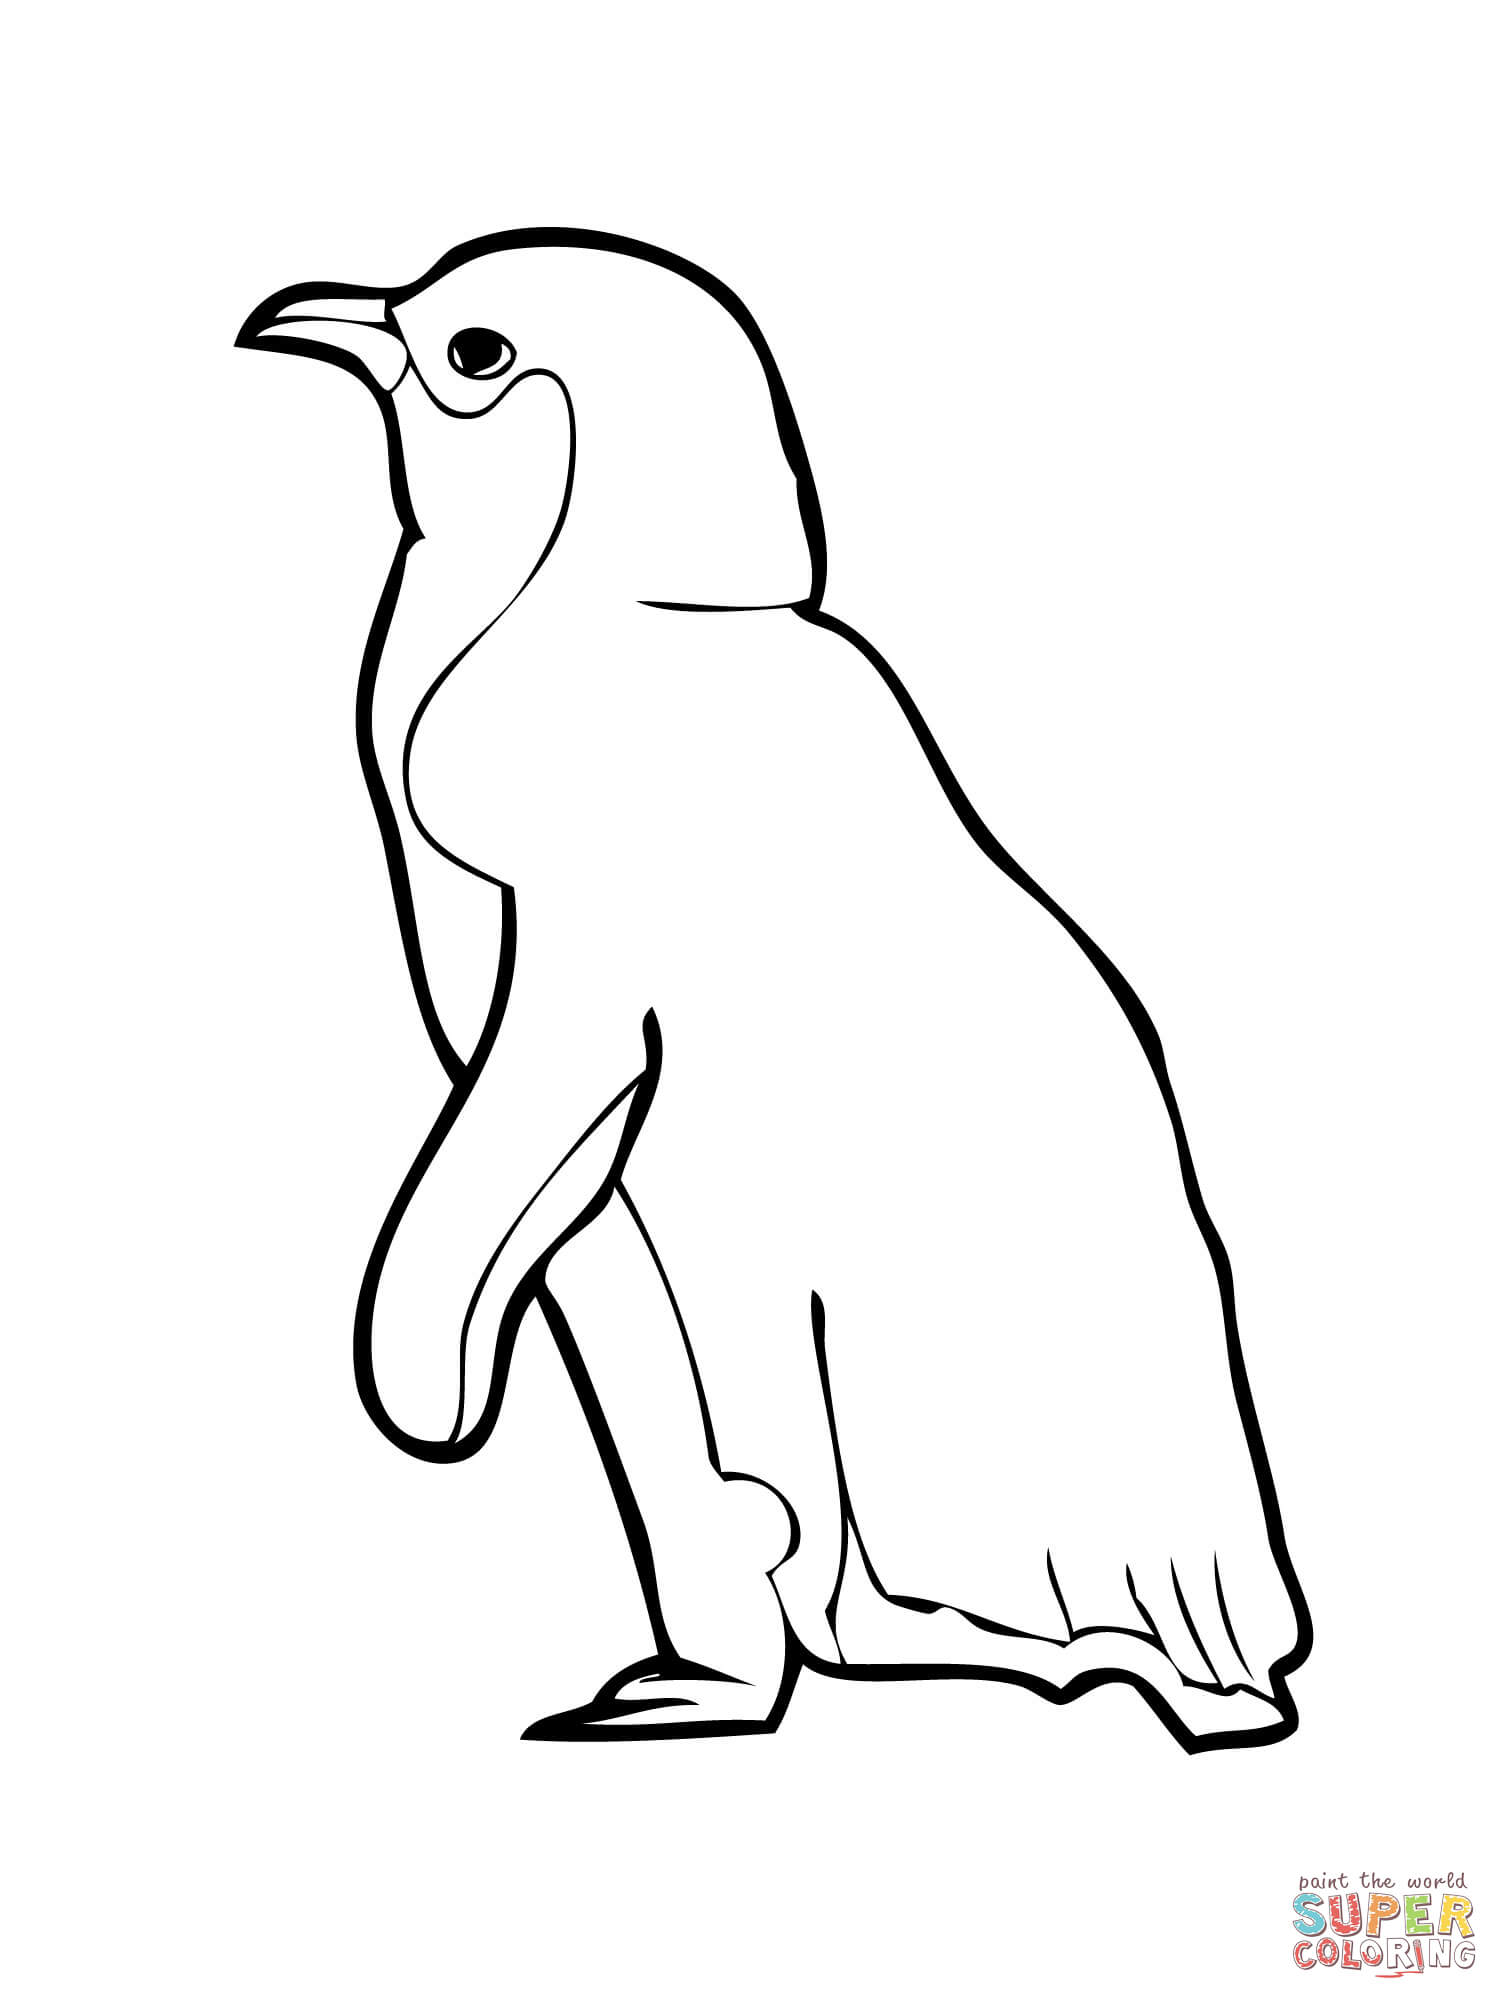 Penguin Outline Drawing at GetDrawings.com   Free for personal use ...